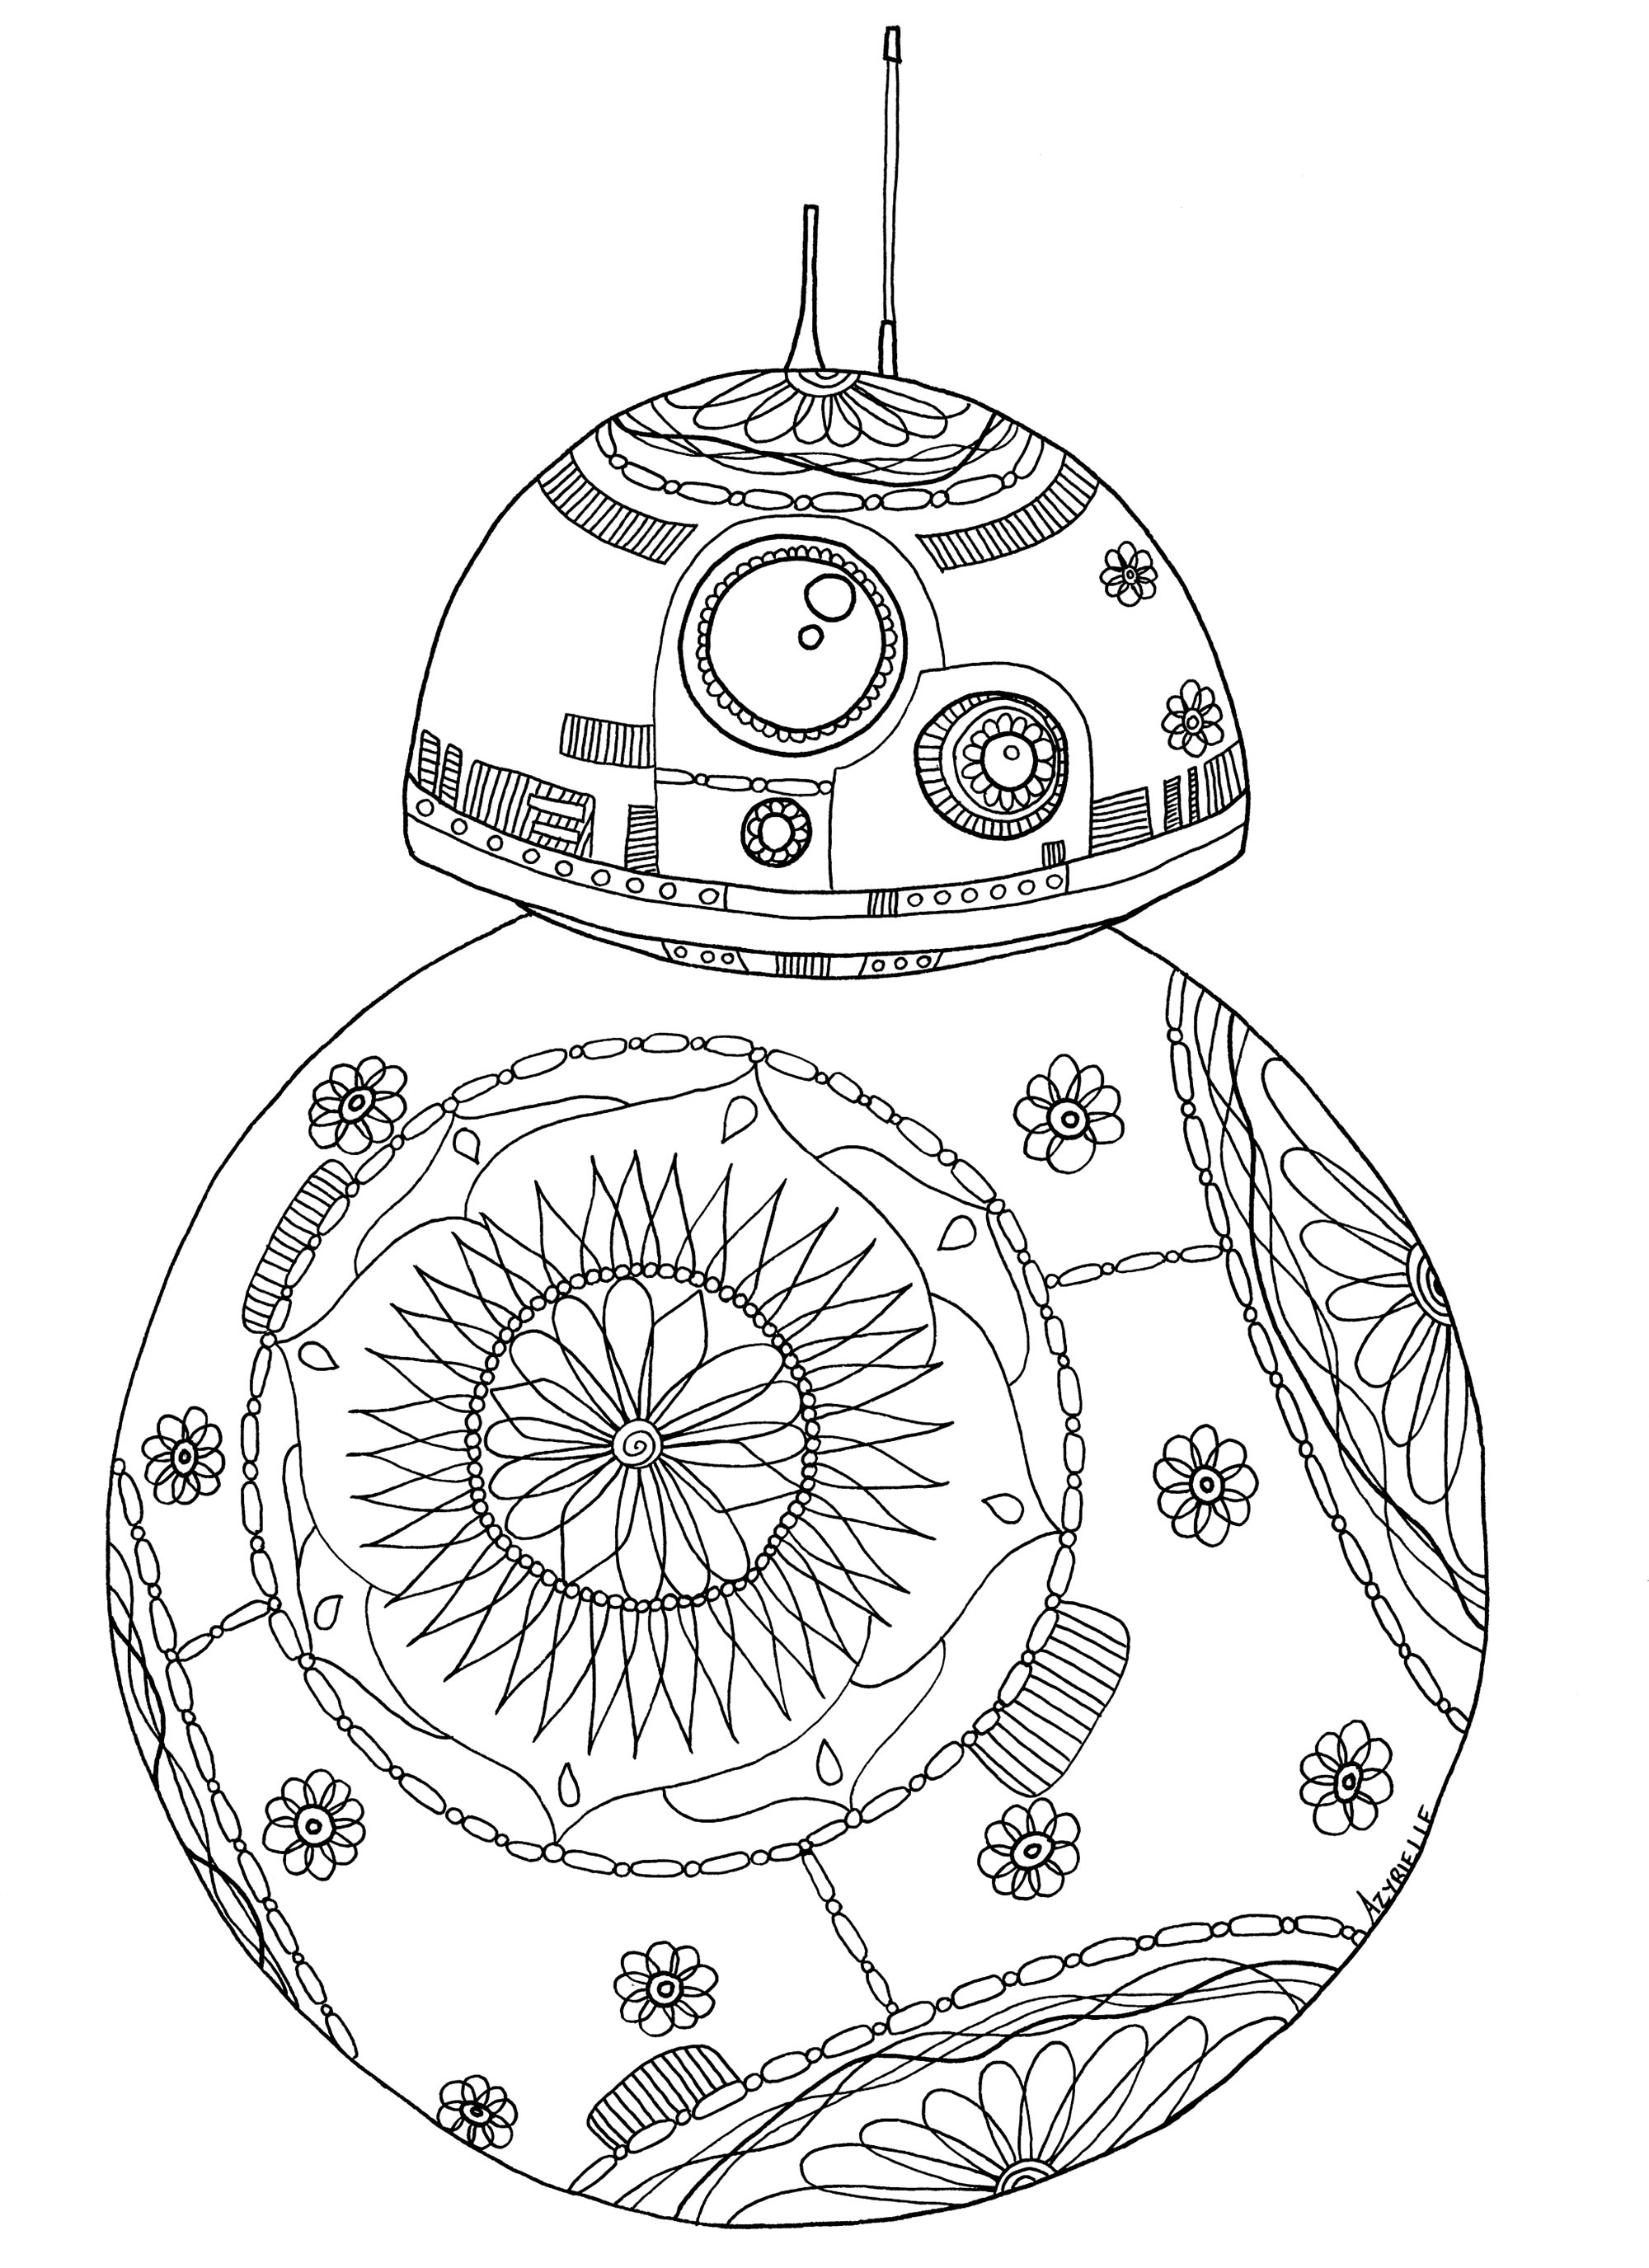 free coloring pages and star wars | Star wars - Coloring Pages for Adults